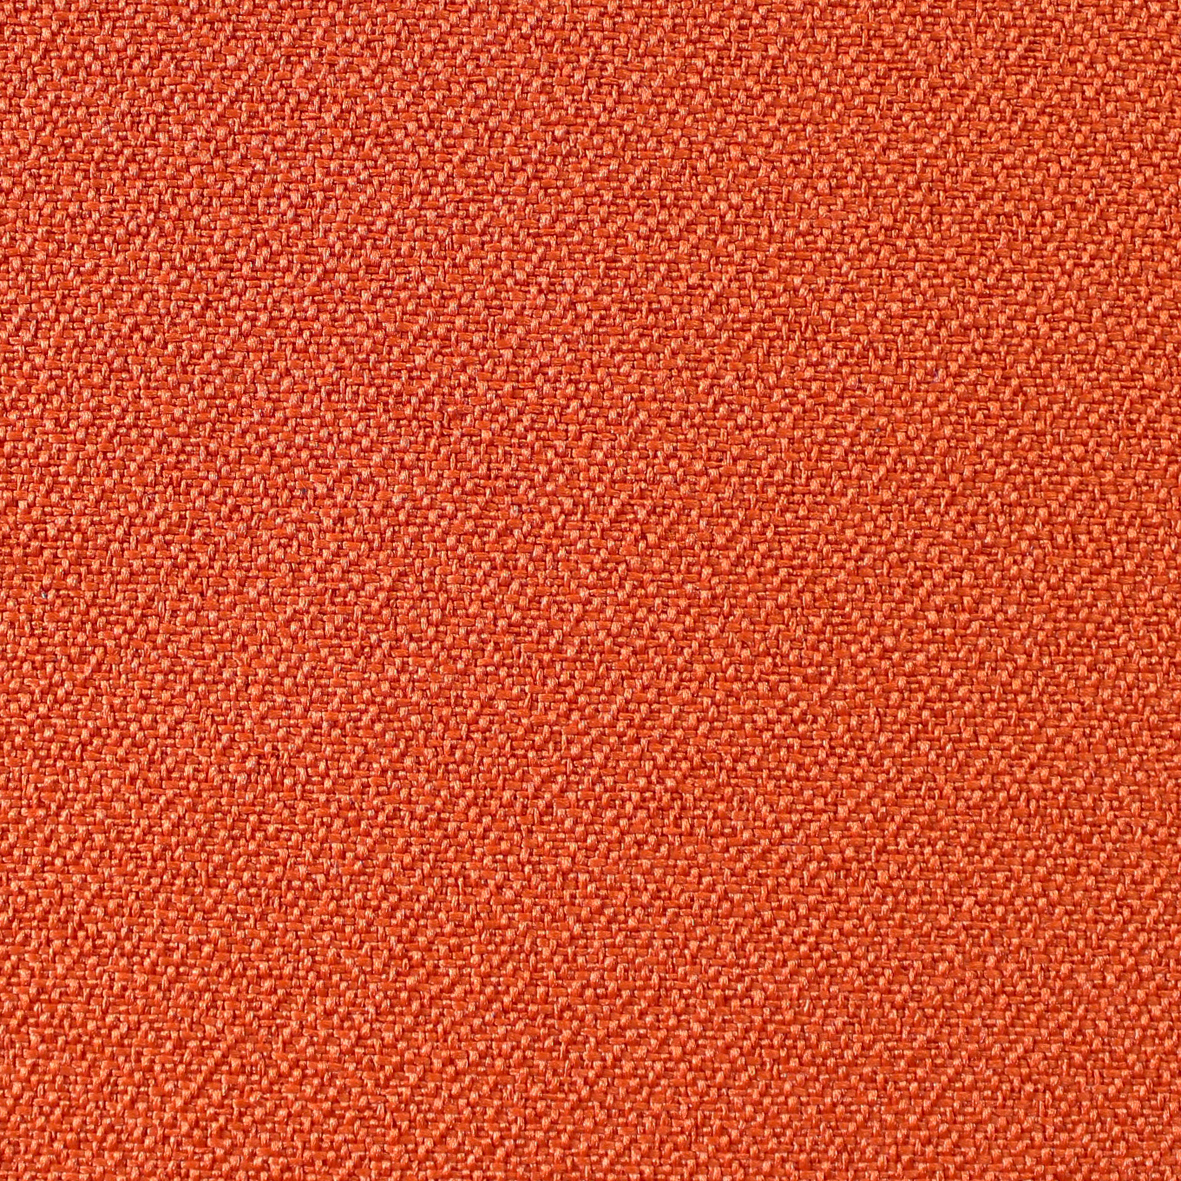 Summer, a seating / upholstery fabric for contract / workplace